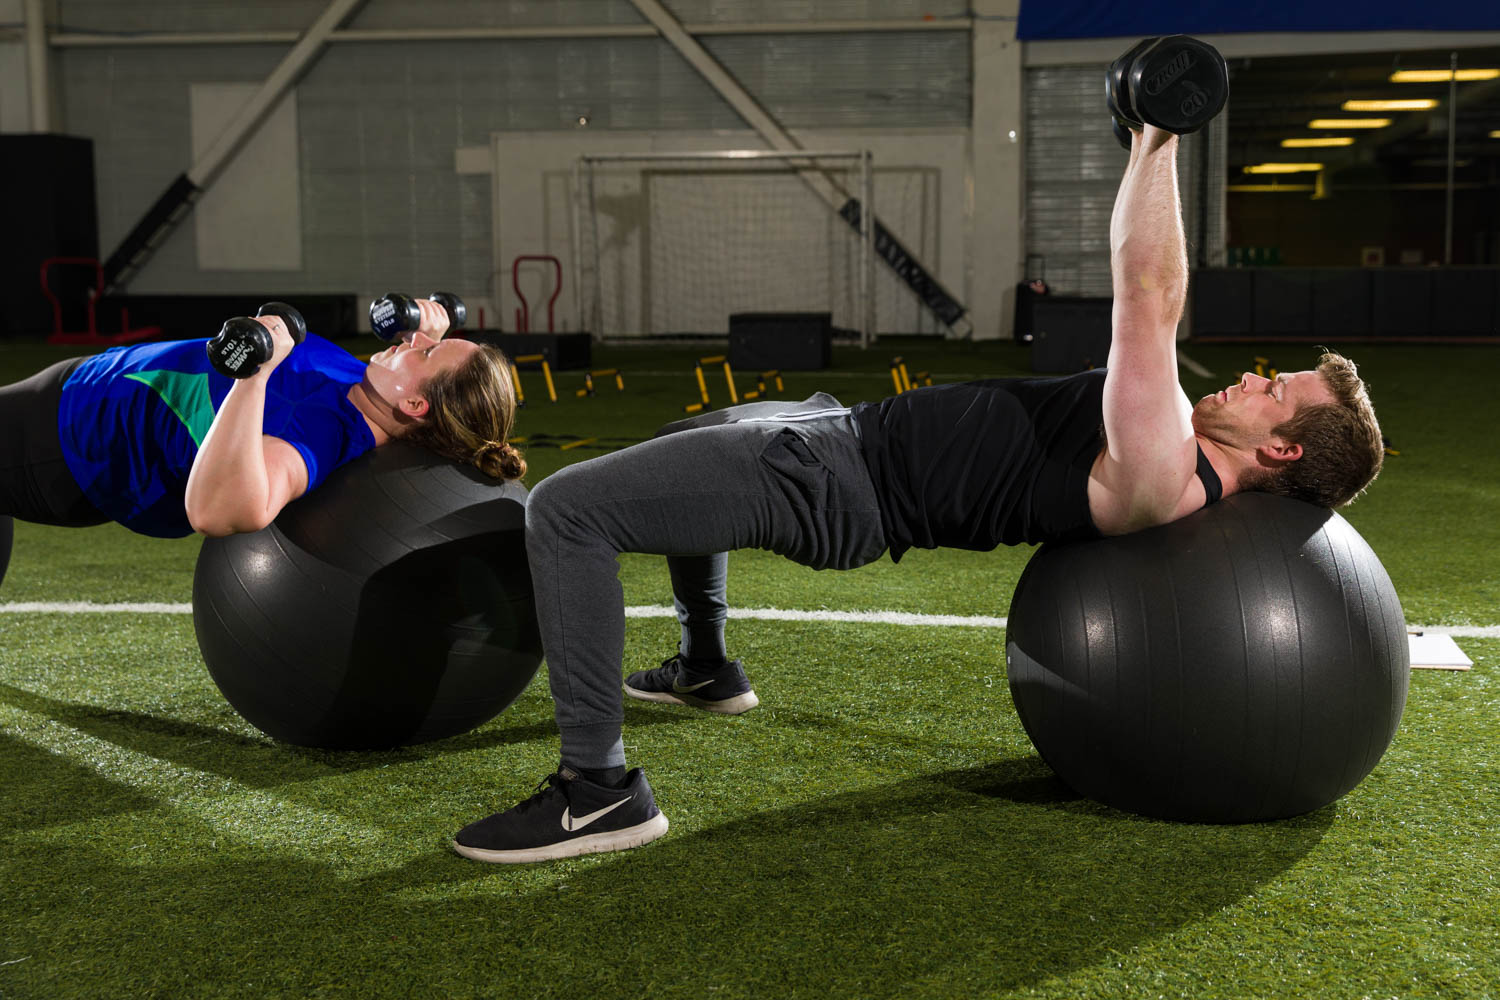 Working with inflatable balls and free weights